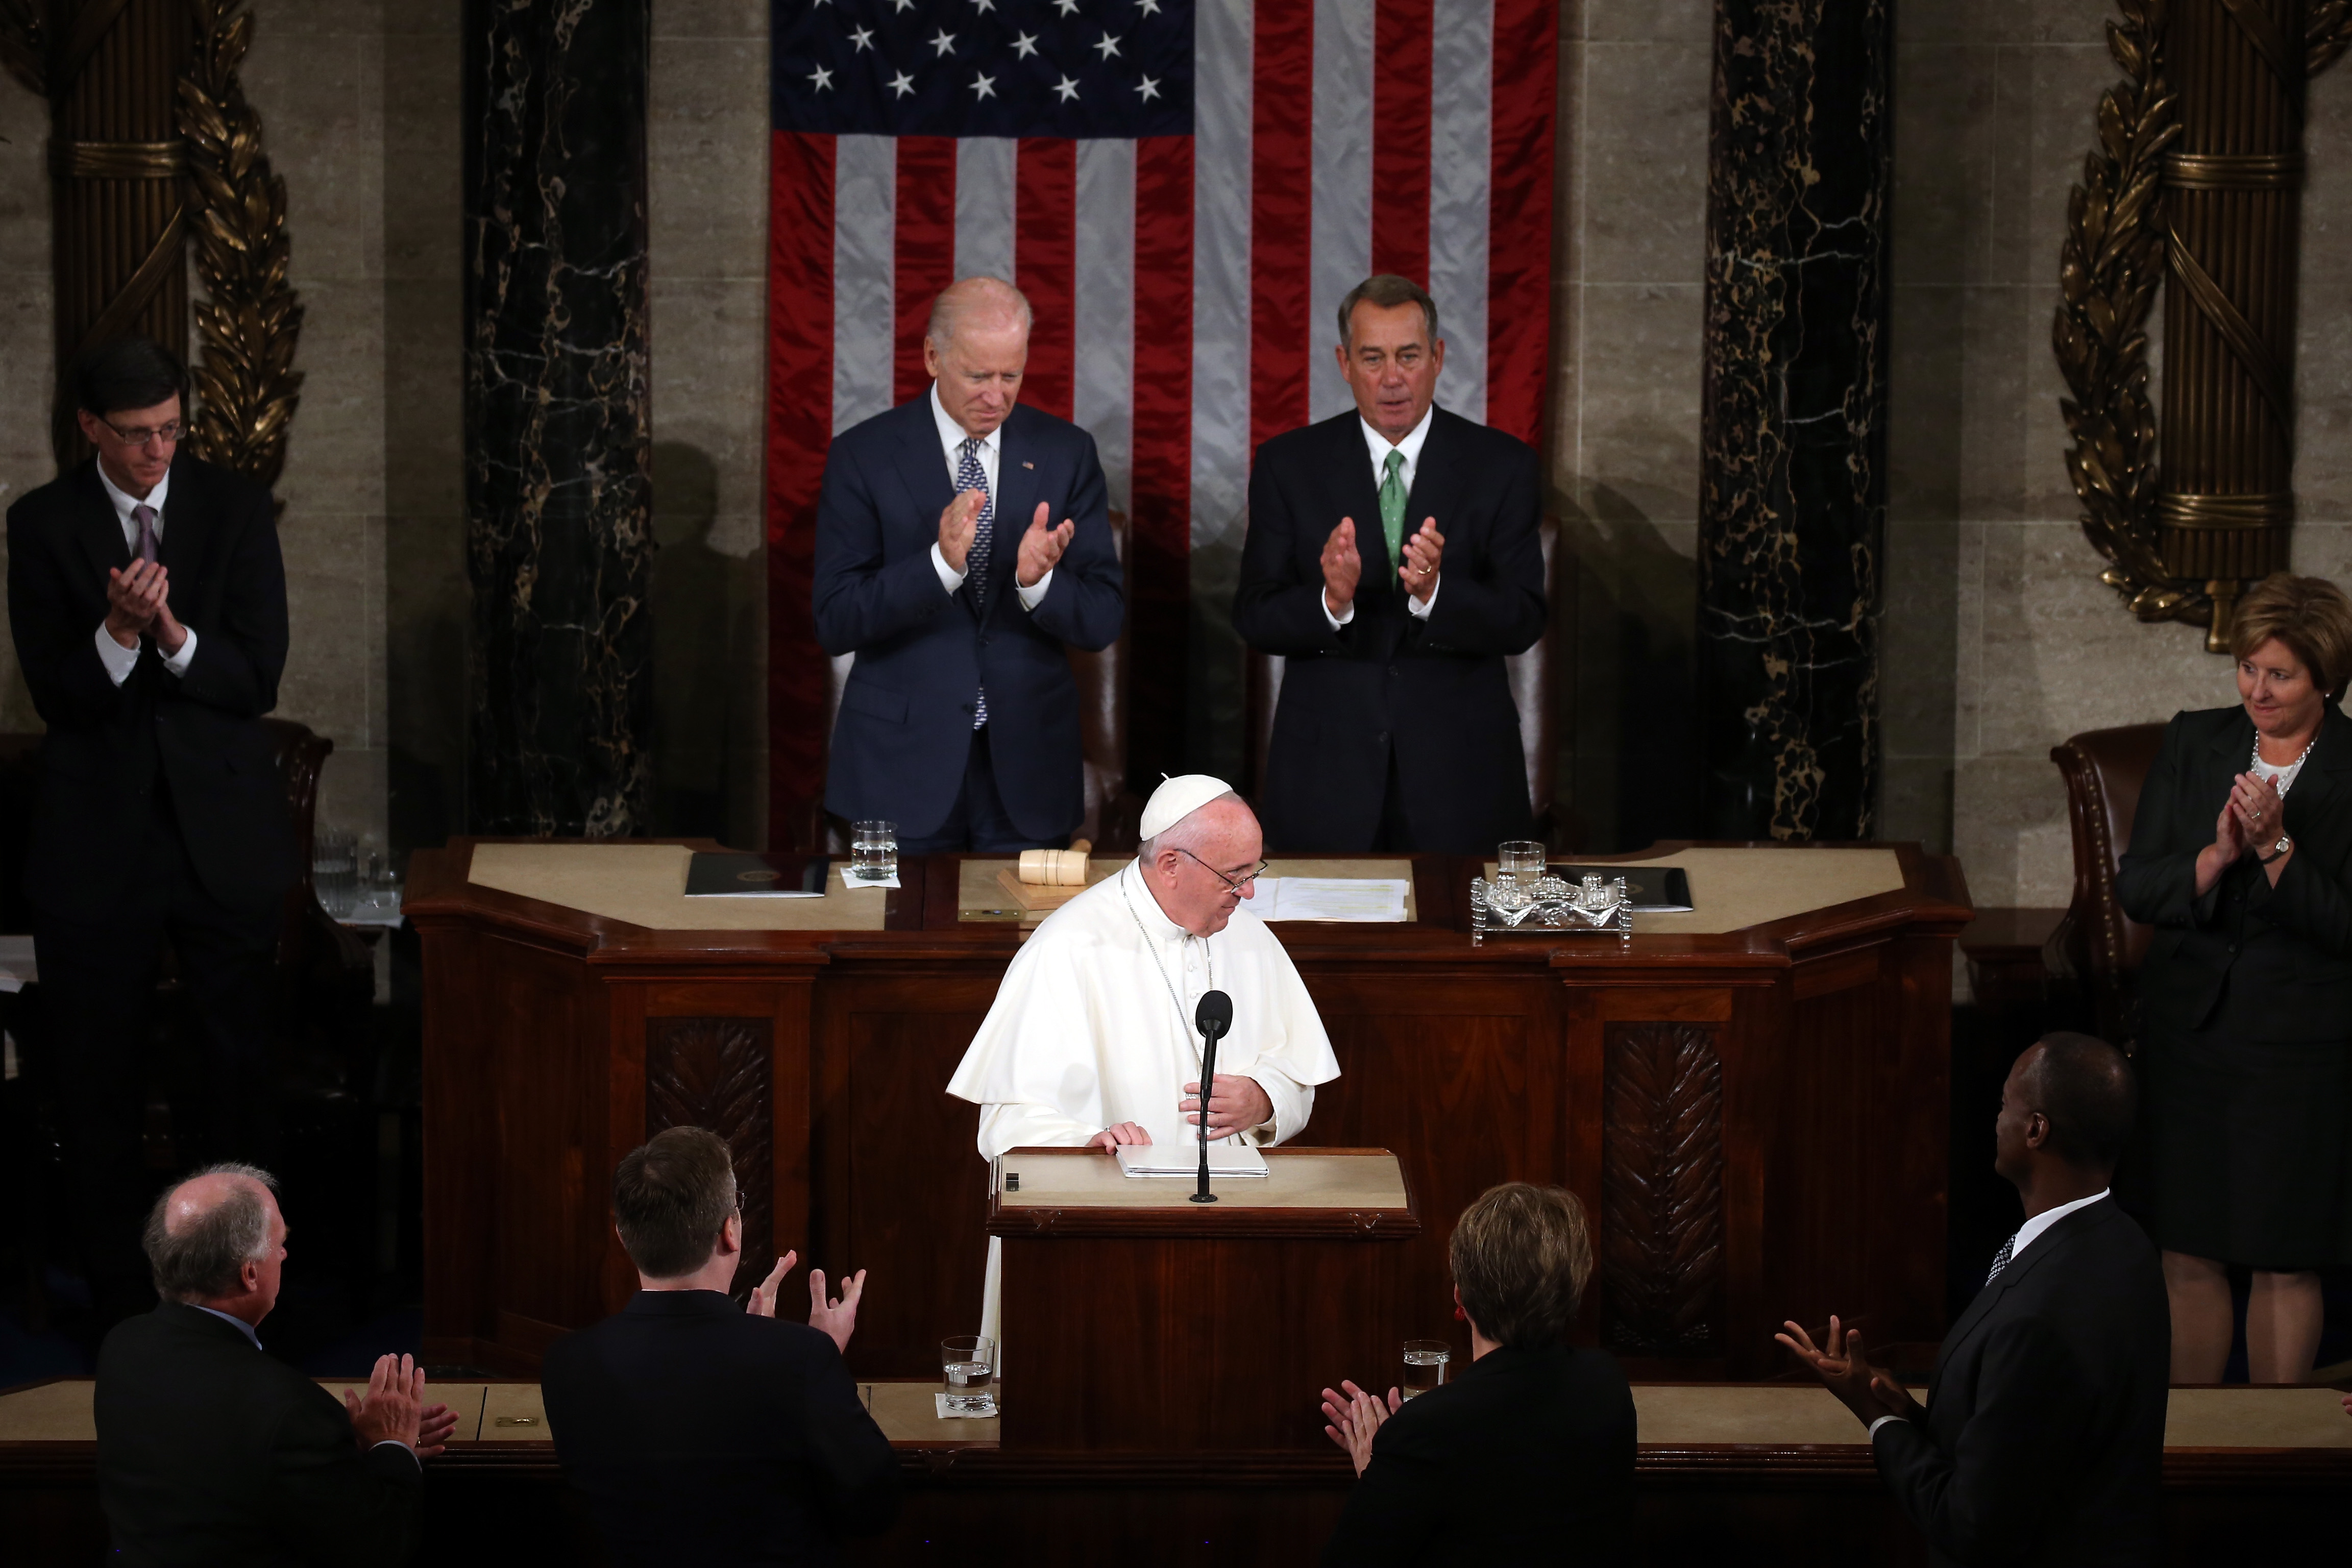 Pope Francis addresses Congress in Washington, D.C. (Getty)